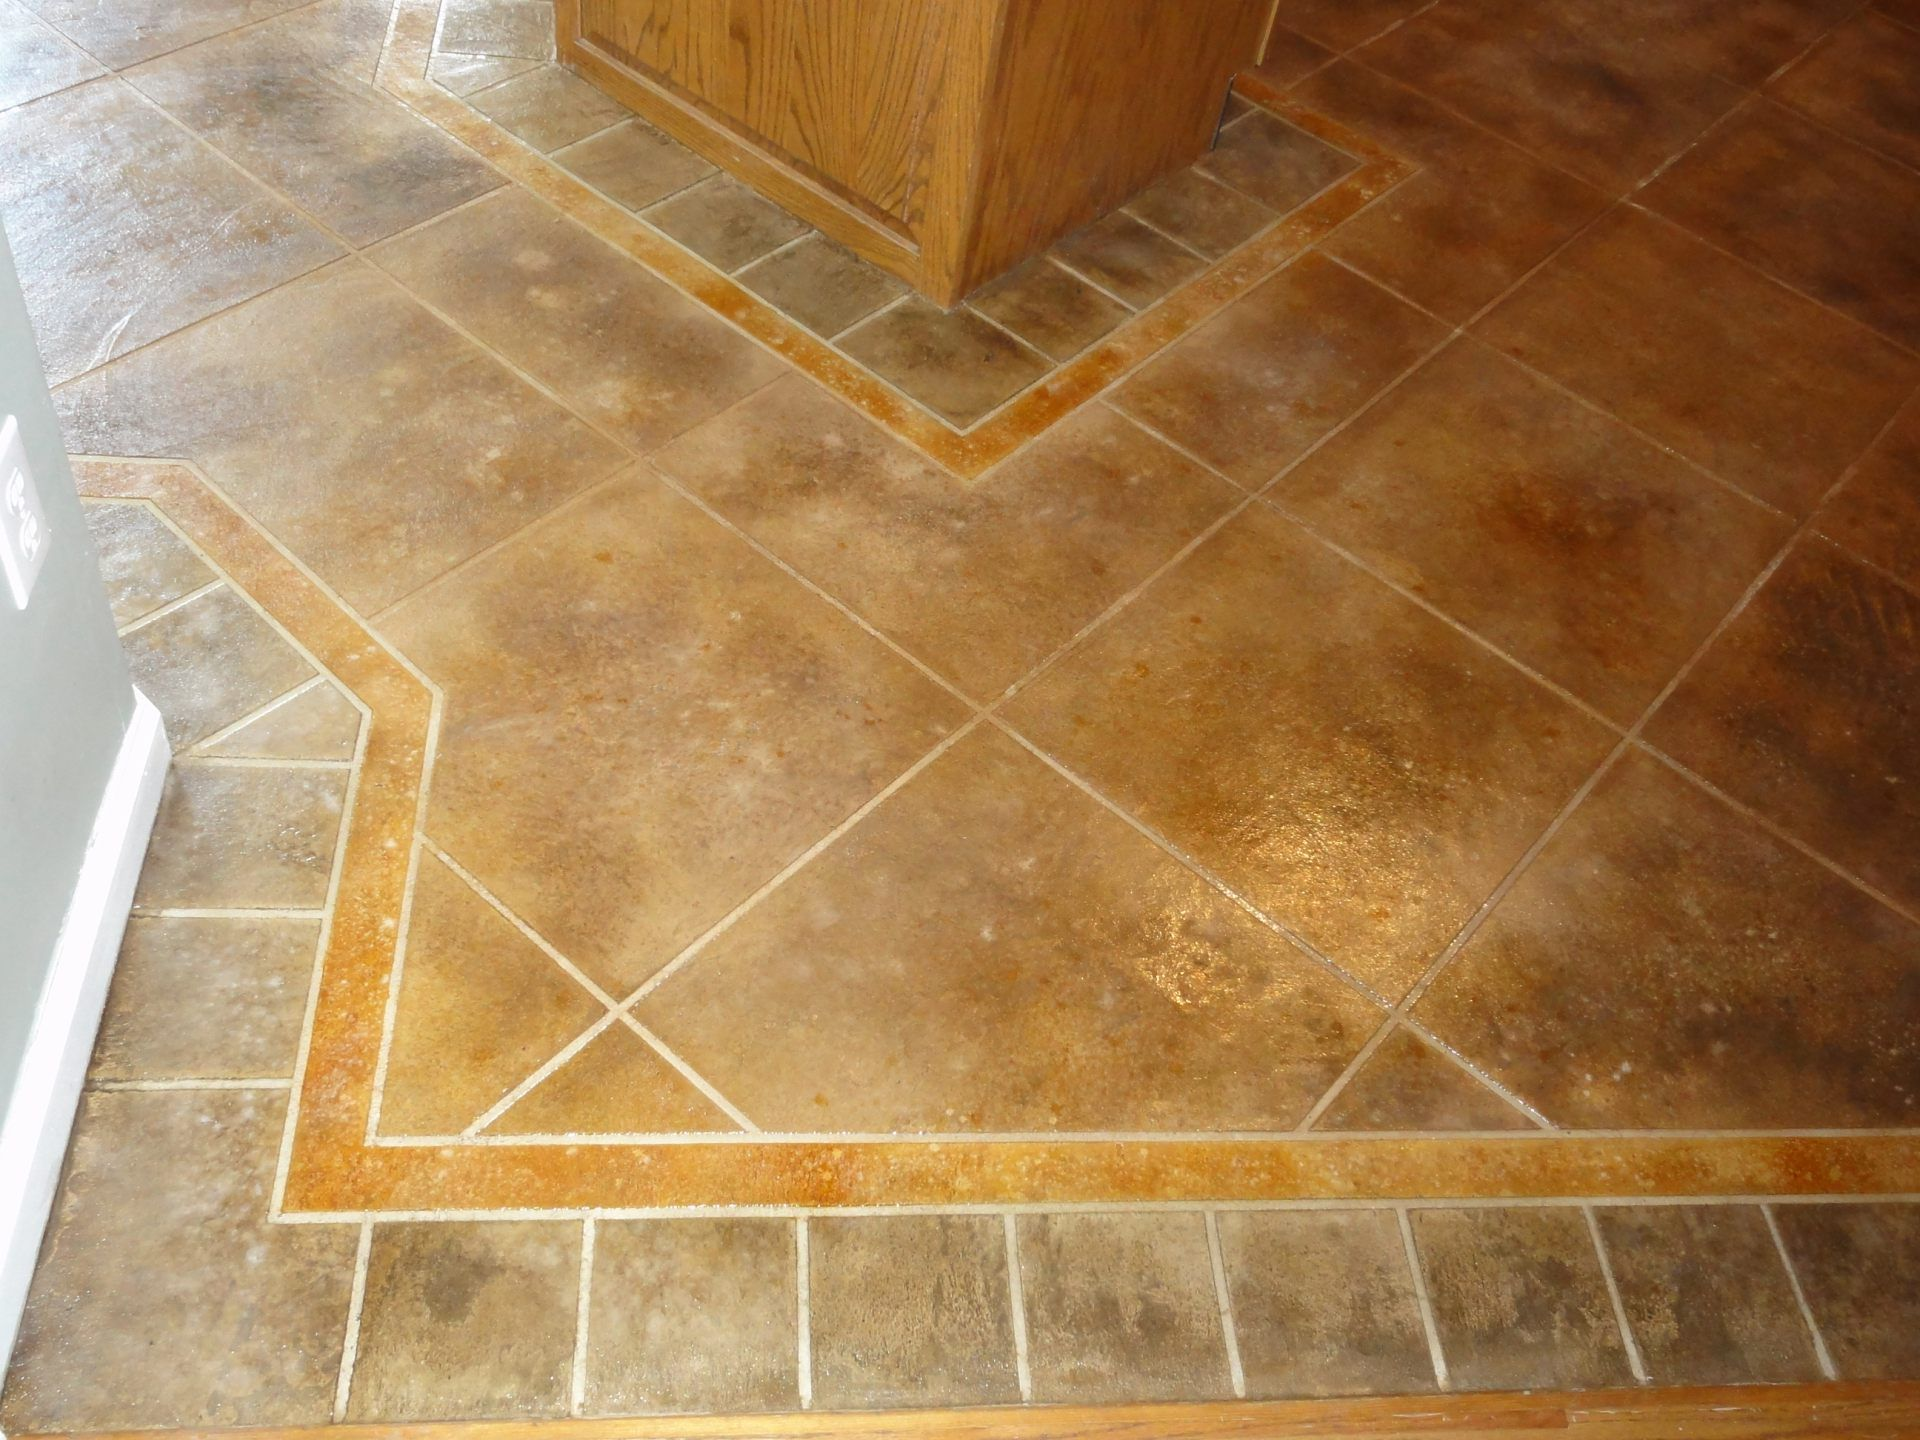 floor tile patterns | concrete kitchen floor random tile pattern